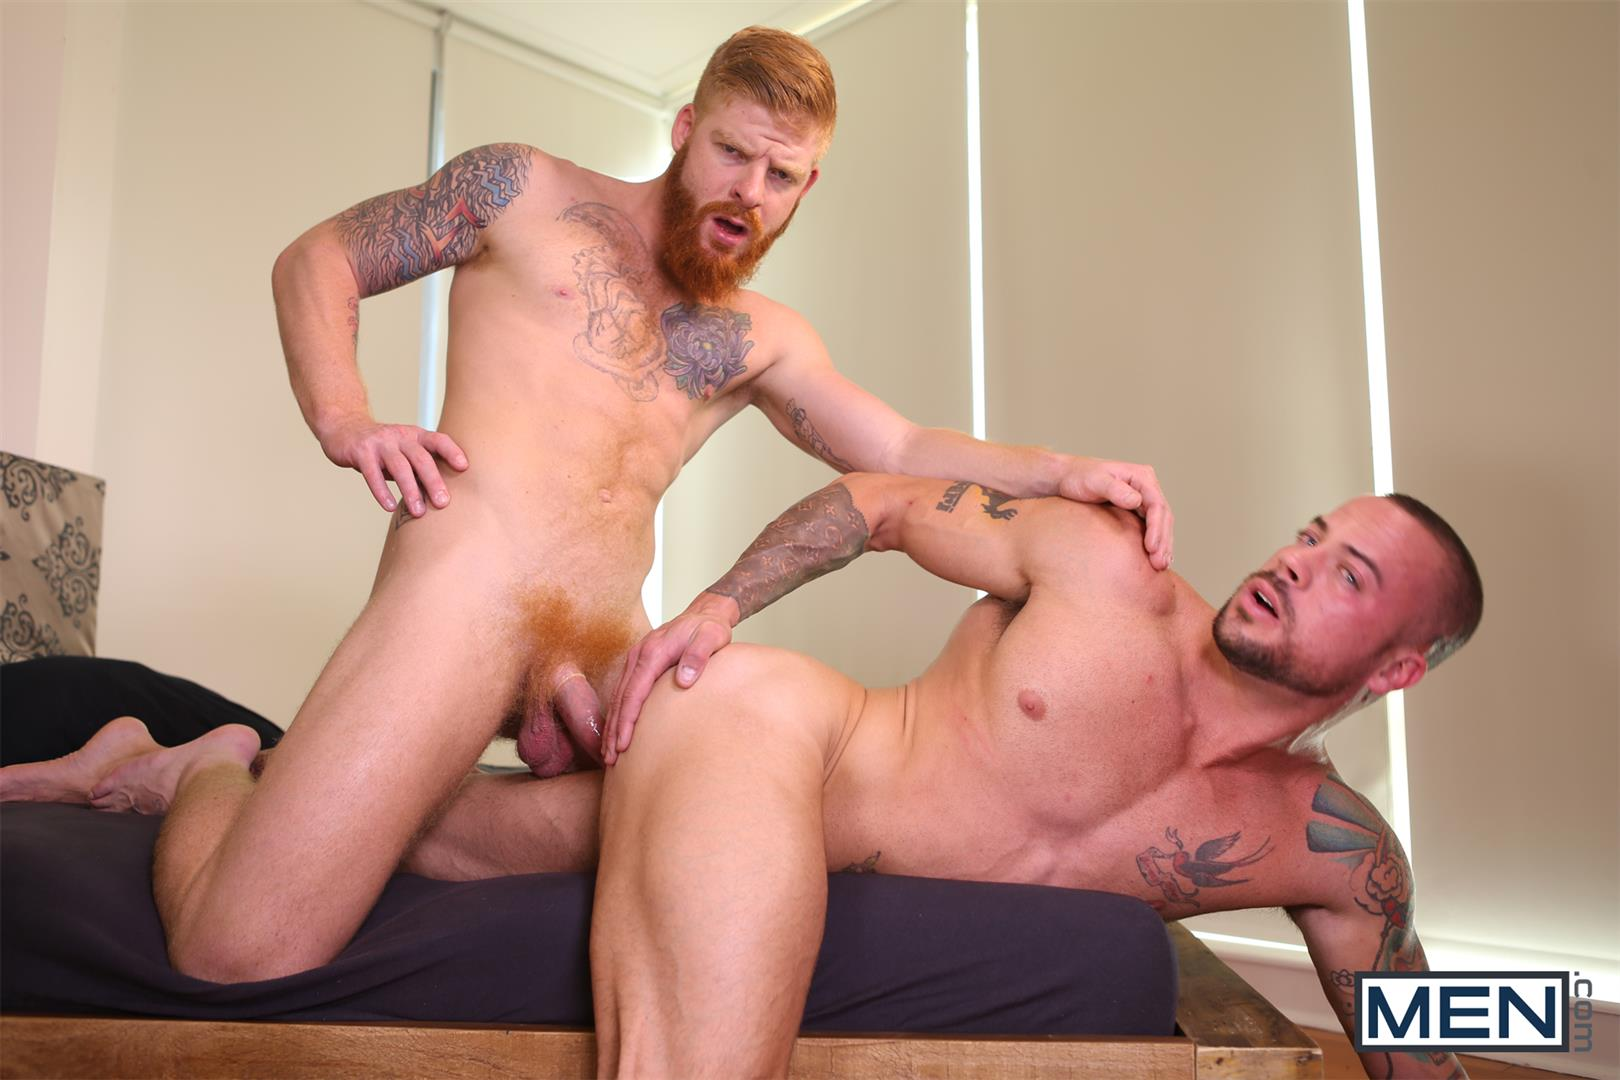 Men Bennett Anthony and Sean Duran Naked Redhead Muscle Guys Fucking Amateur Gay Porn 11 Bennett Anthony Fucking A Muscle Hunk With His Big Ginger Cock